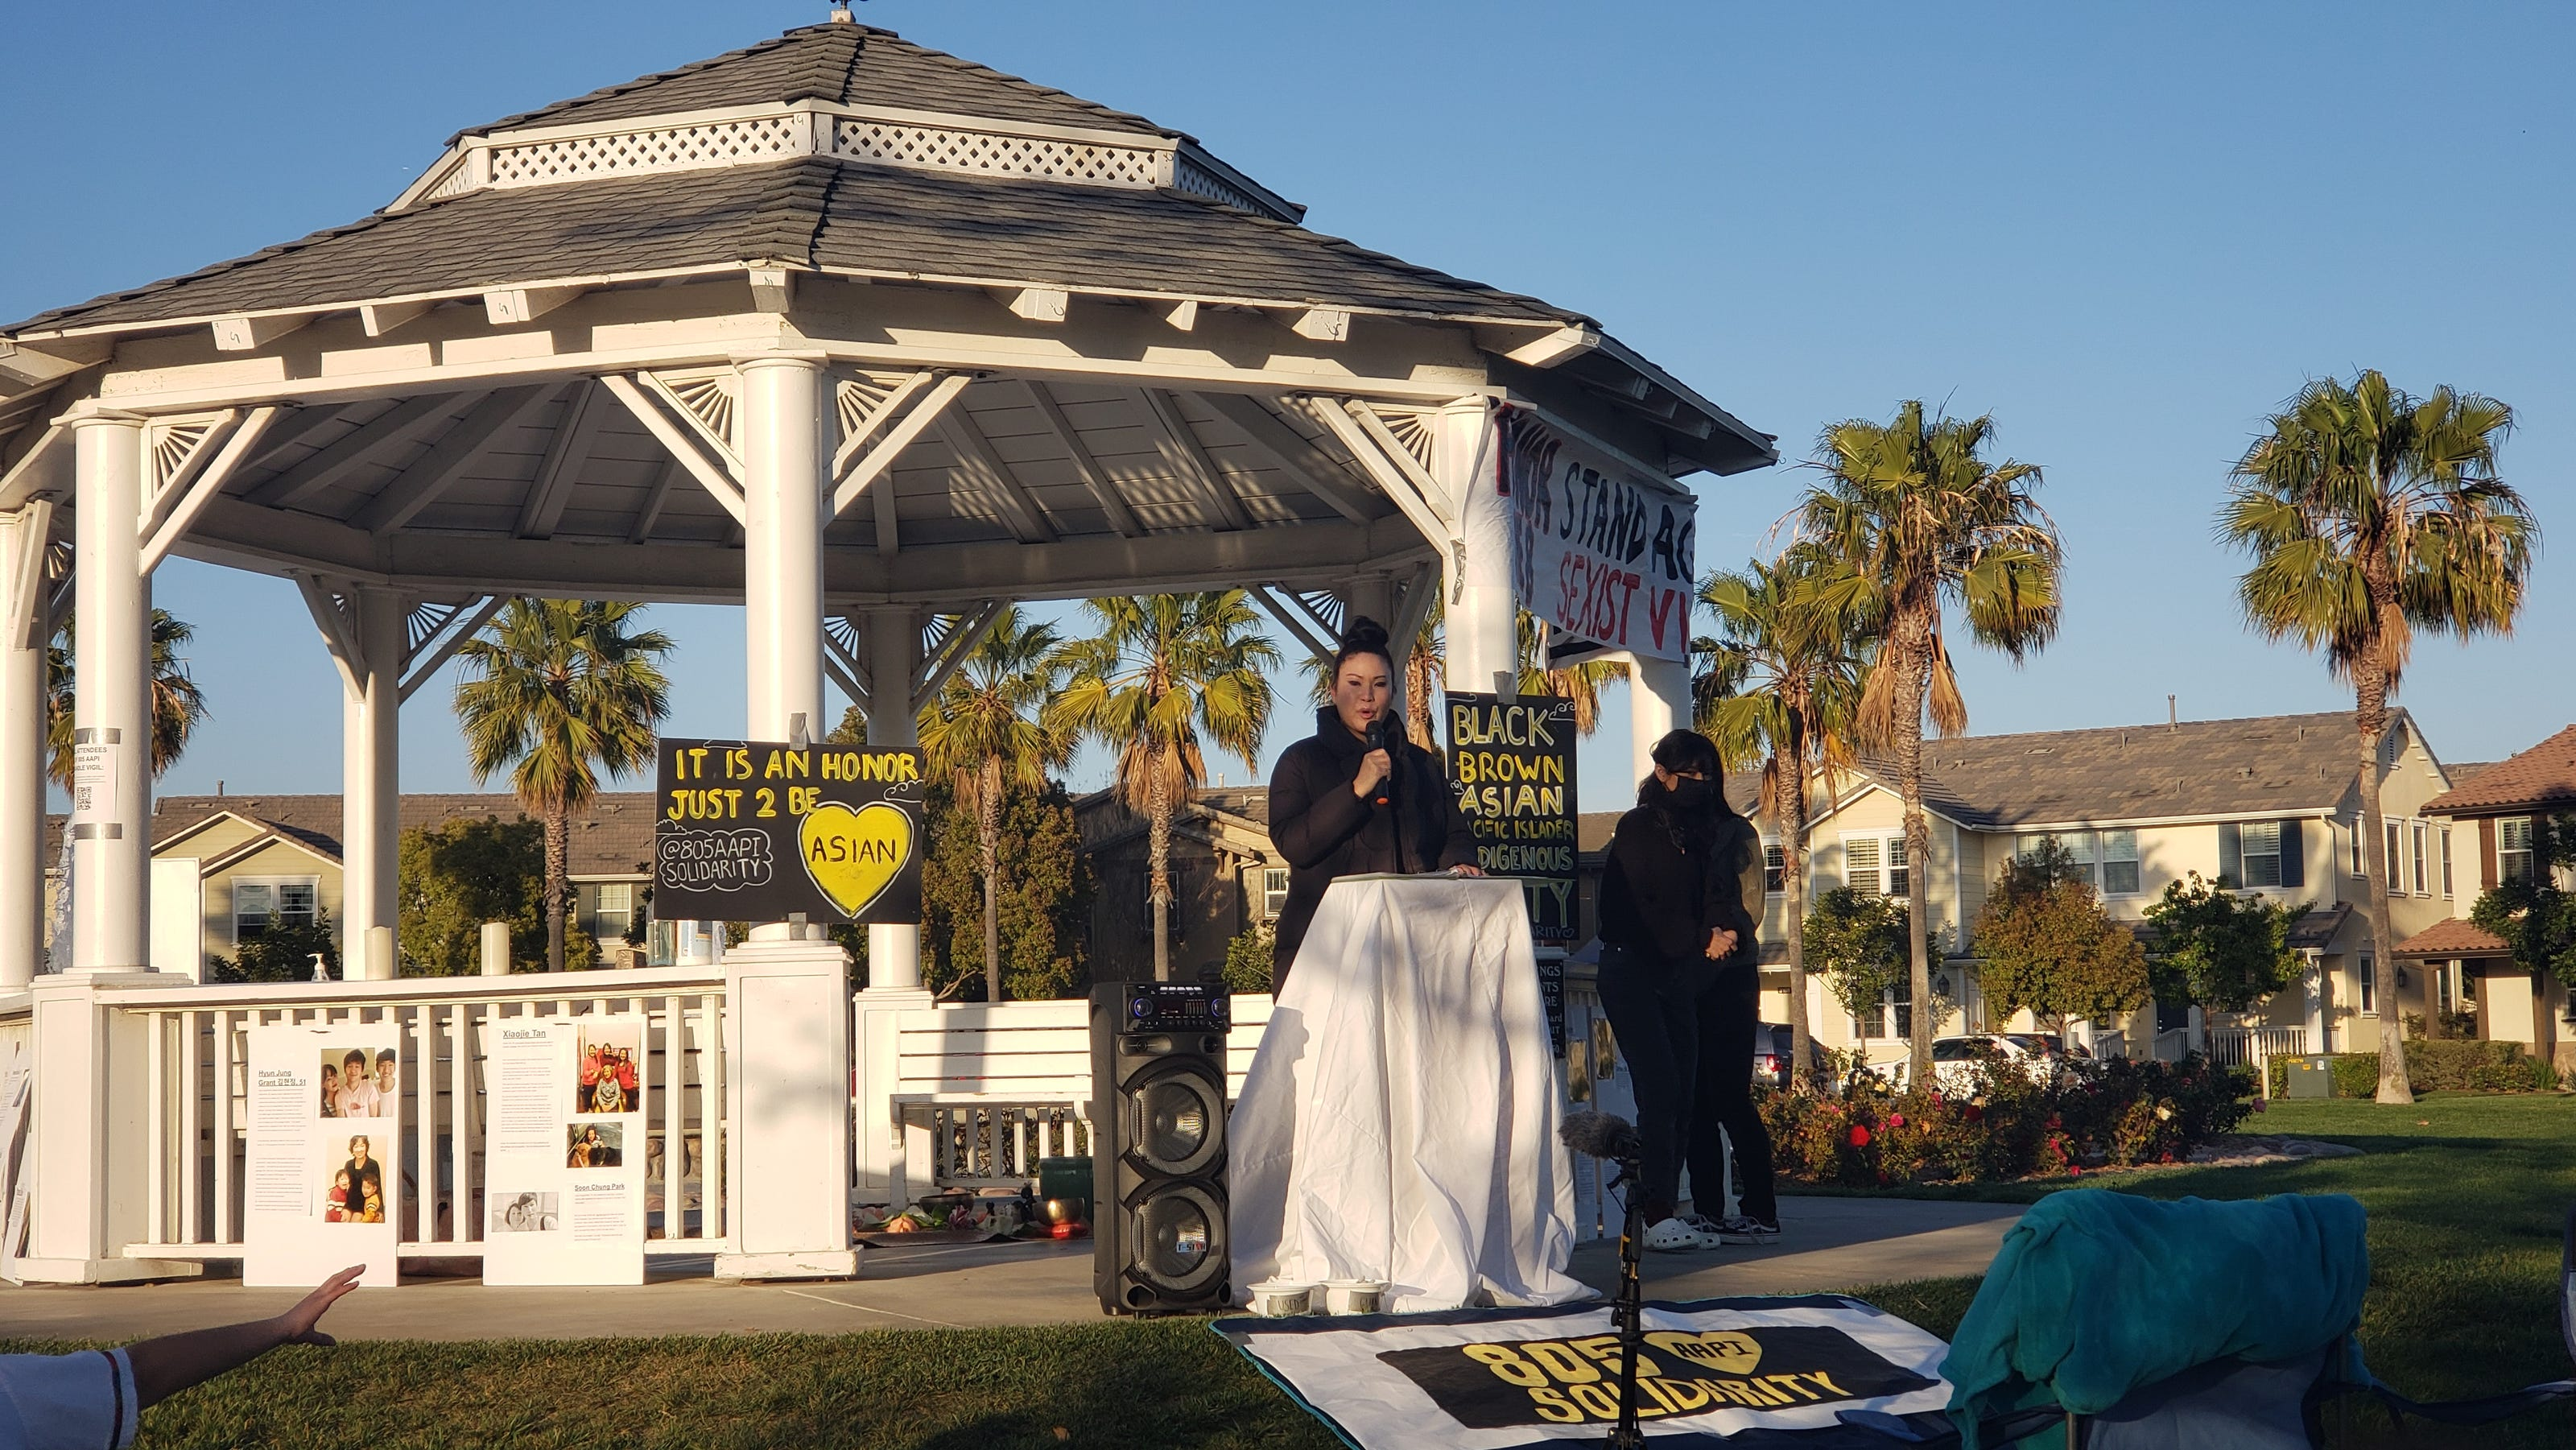 www.vcstar.com: Candlelight vigil held to honor victims of Asian American hate crimes